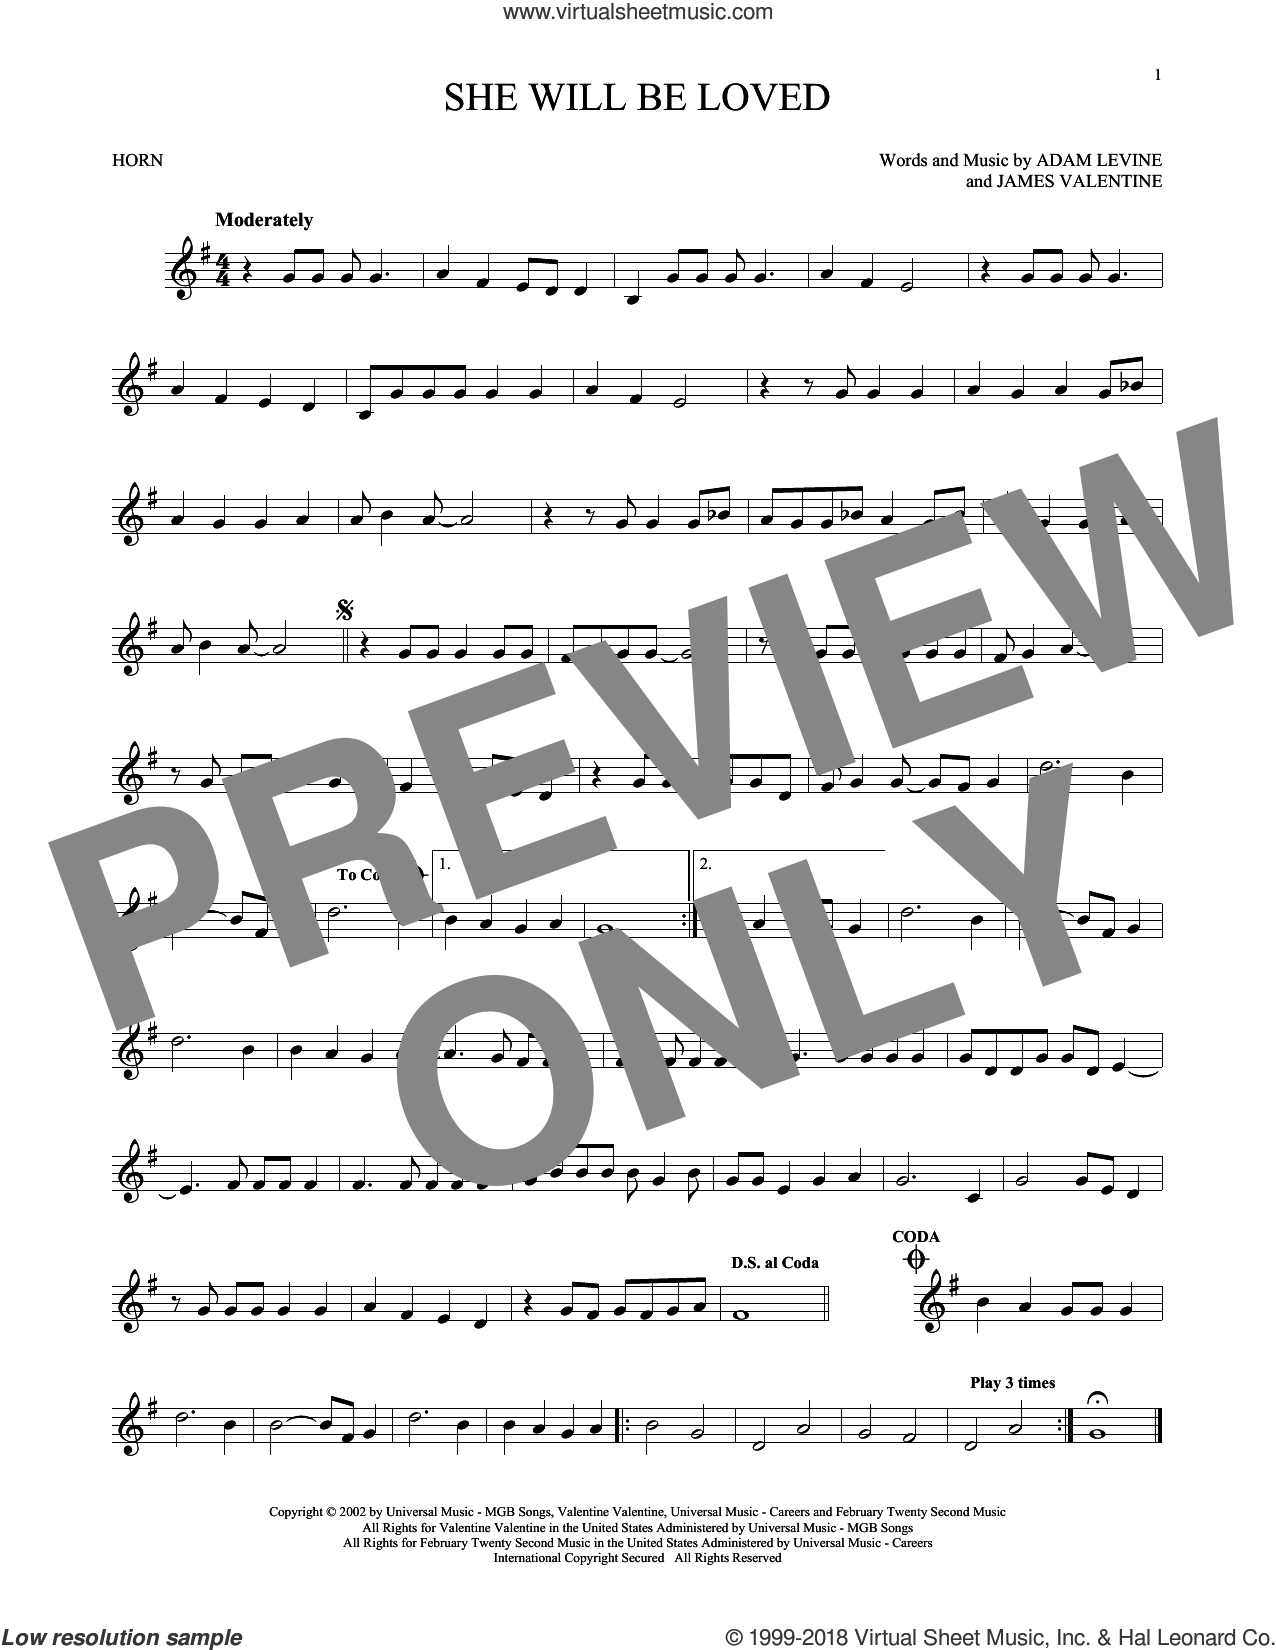 She Will Be Loved sheet music for horn solo by Maroon 5, Adam Levine and James Valentine, intermediate skill level